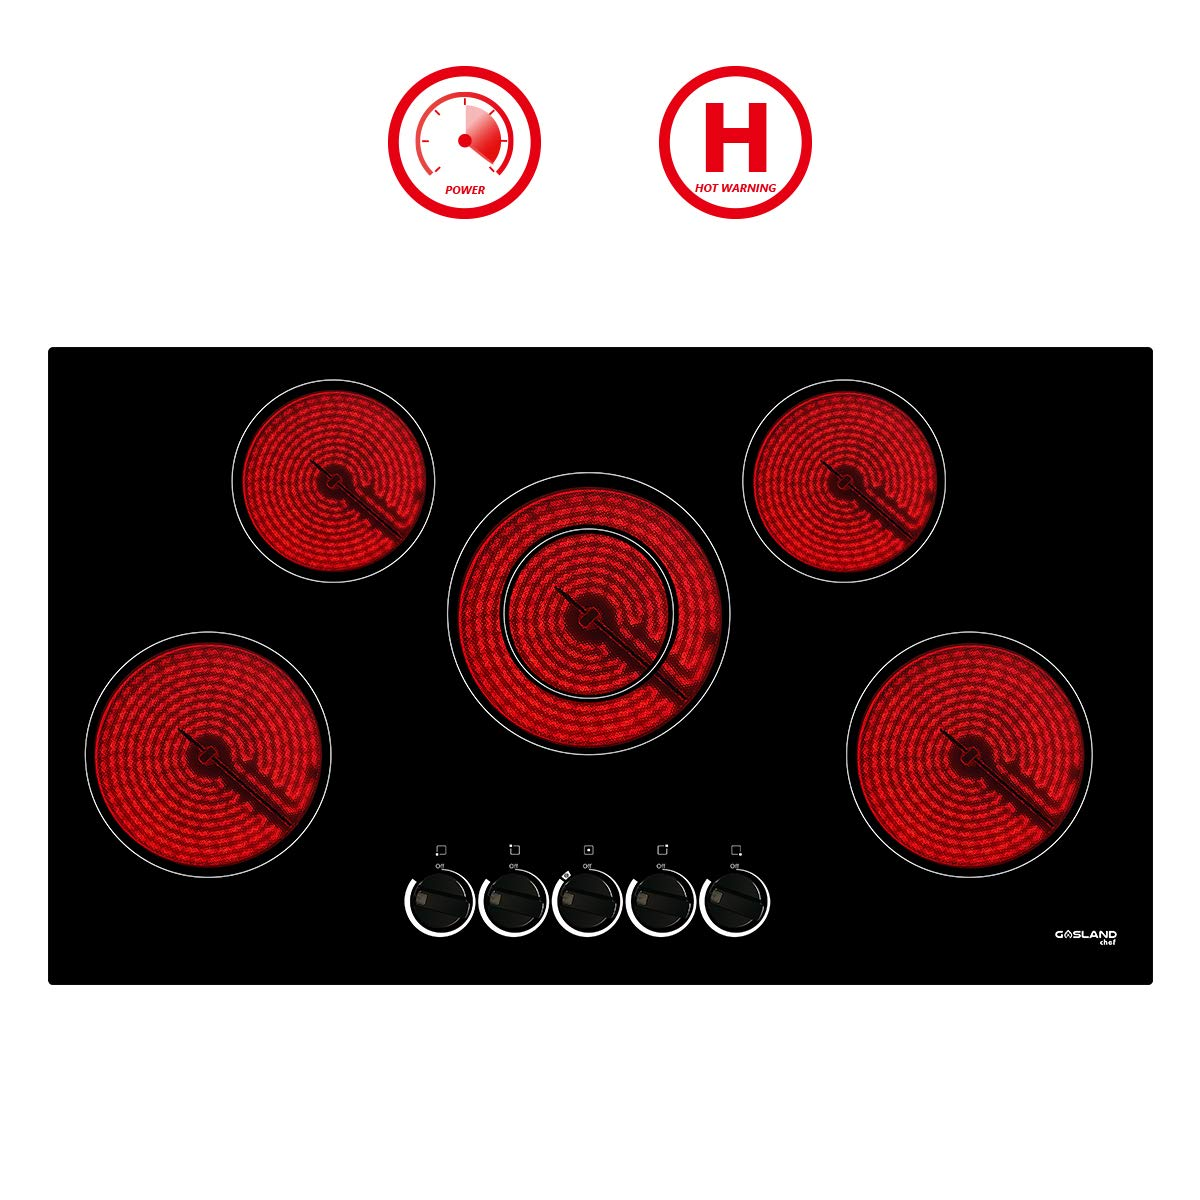 """36"""" Built-in Electric Cooktop, GASLAND Chef CH90BS 240V Ceramic Cooktop, Drop-in 5 Burner Coil Electric Radiant Cooktop, 7 Power Levels, Mechanical Knob Control, Hot Warning, Hardwired"""